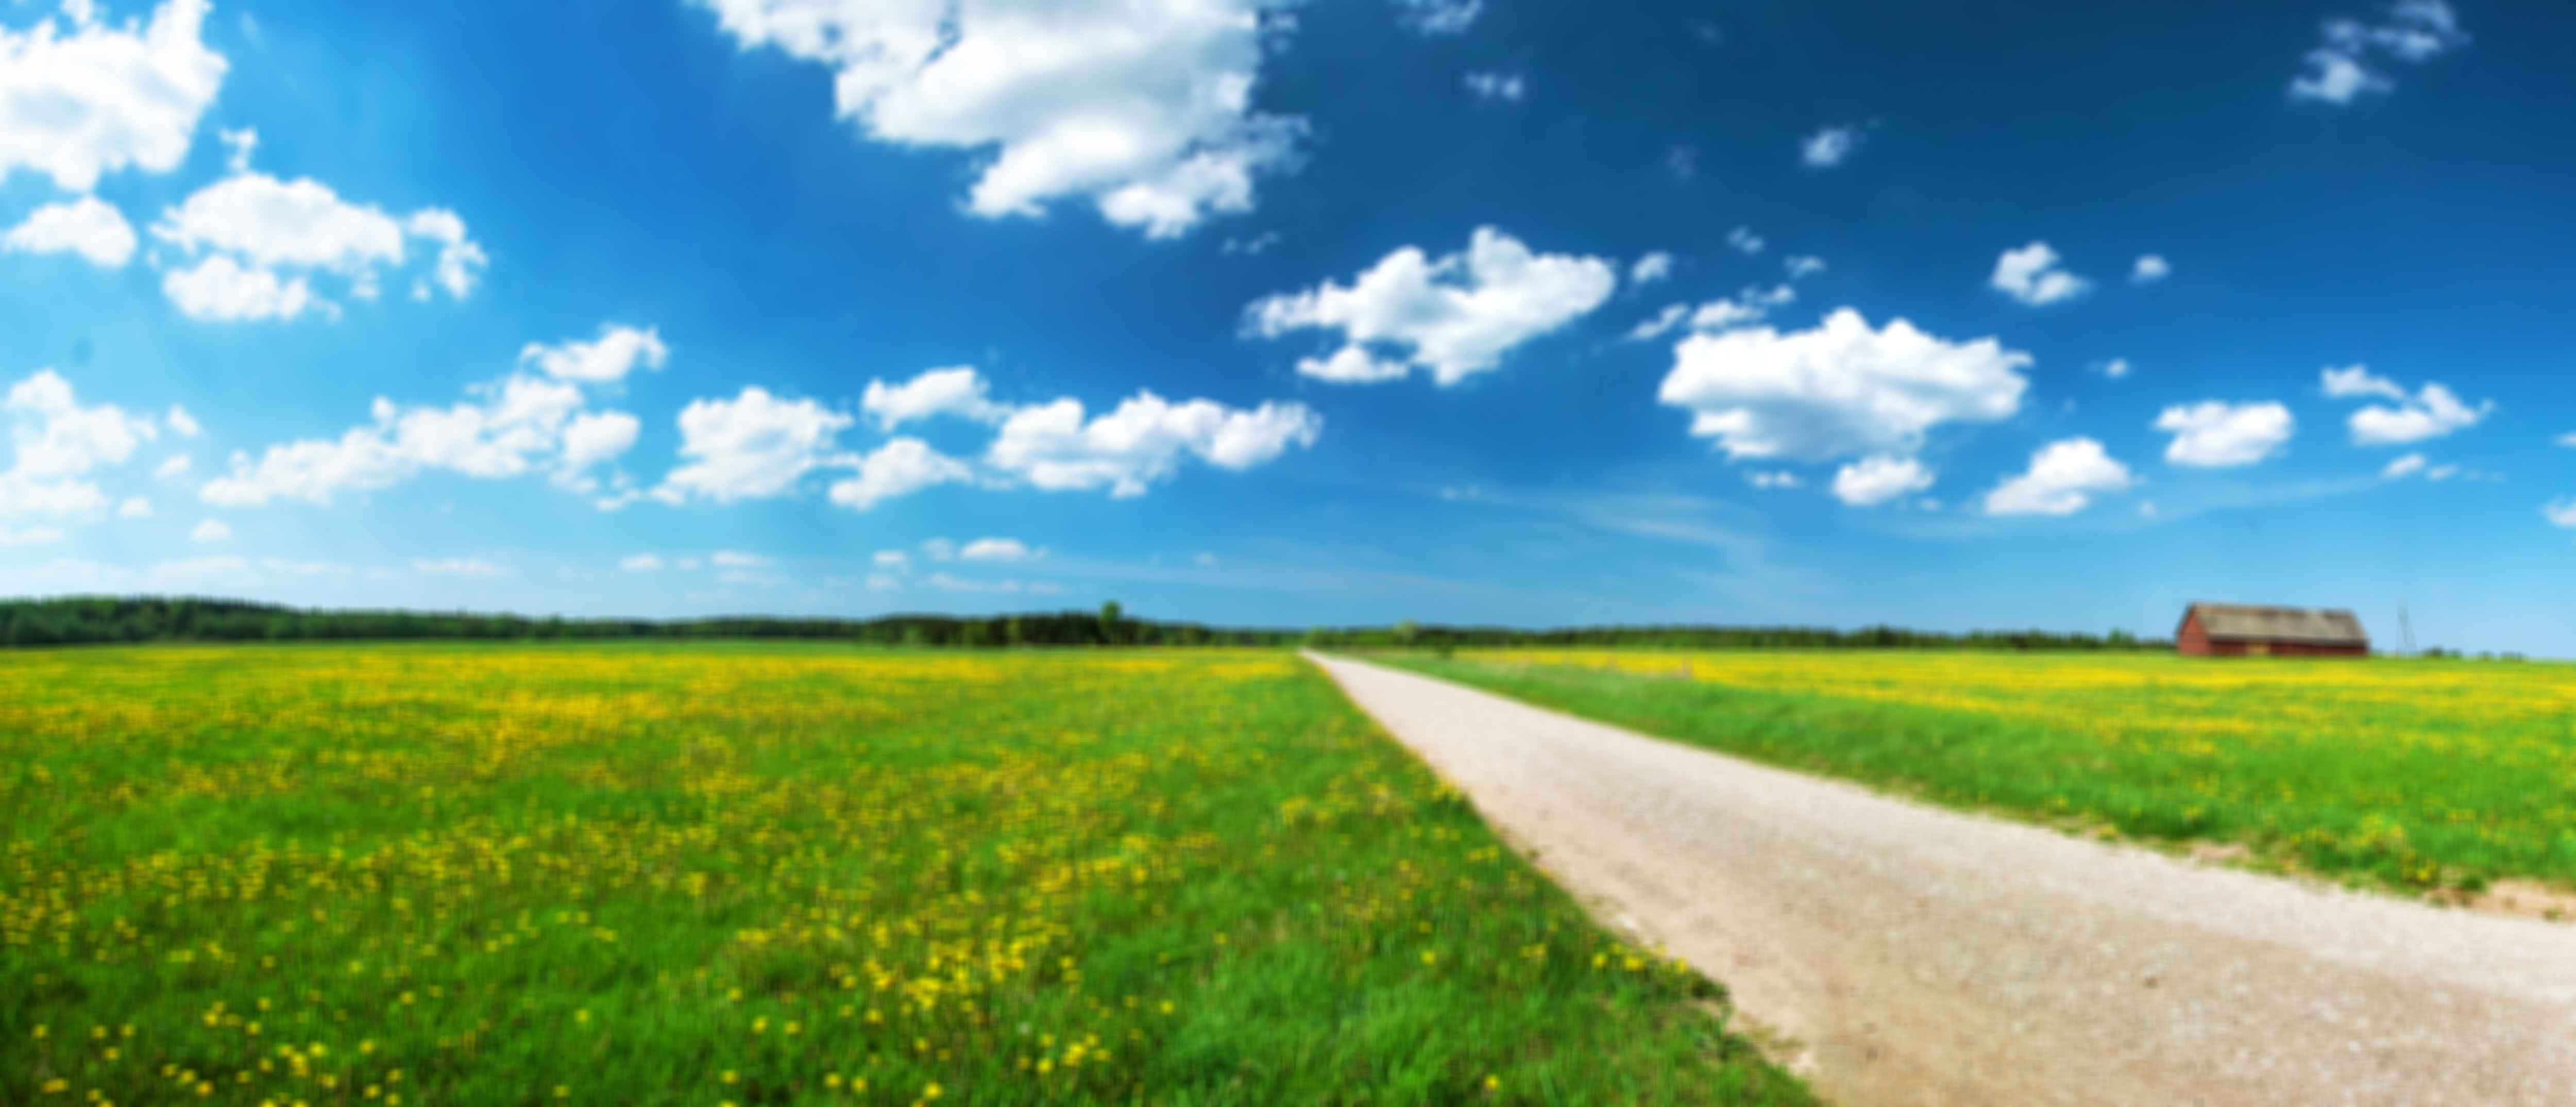 blurred background of a country road through a flowering field with blue skies